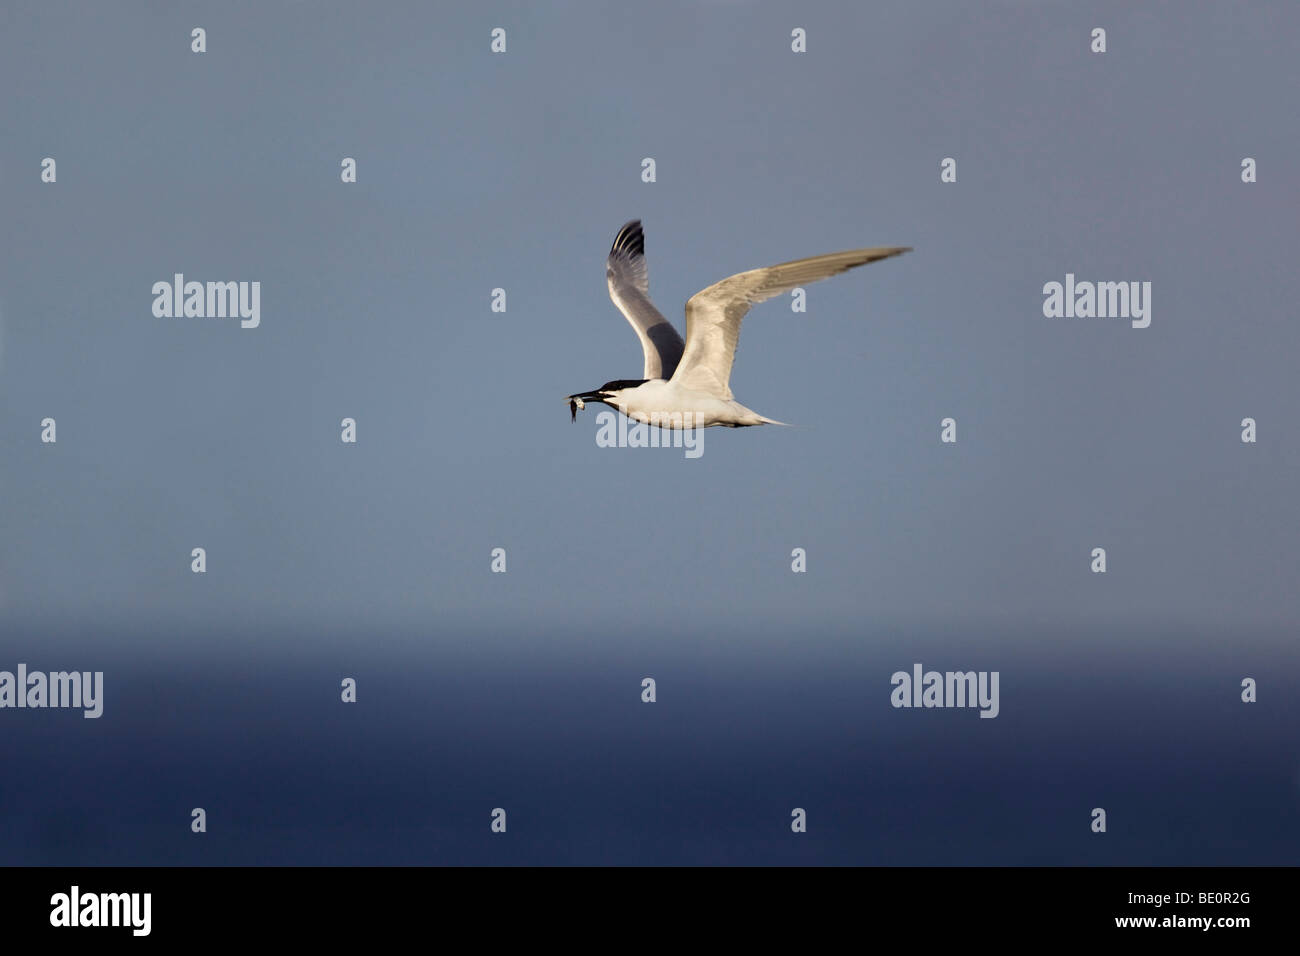 sandwich tern; Sterna sandvichensis; flying with fish - Stock Image